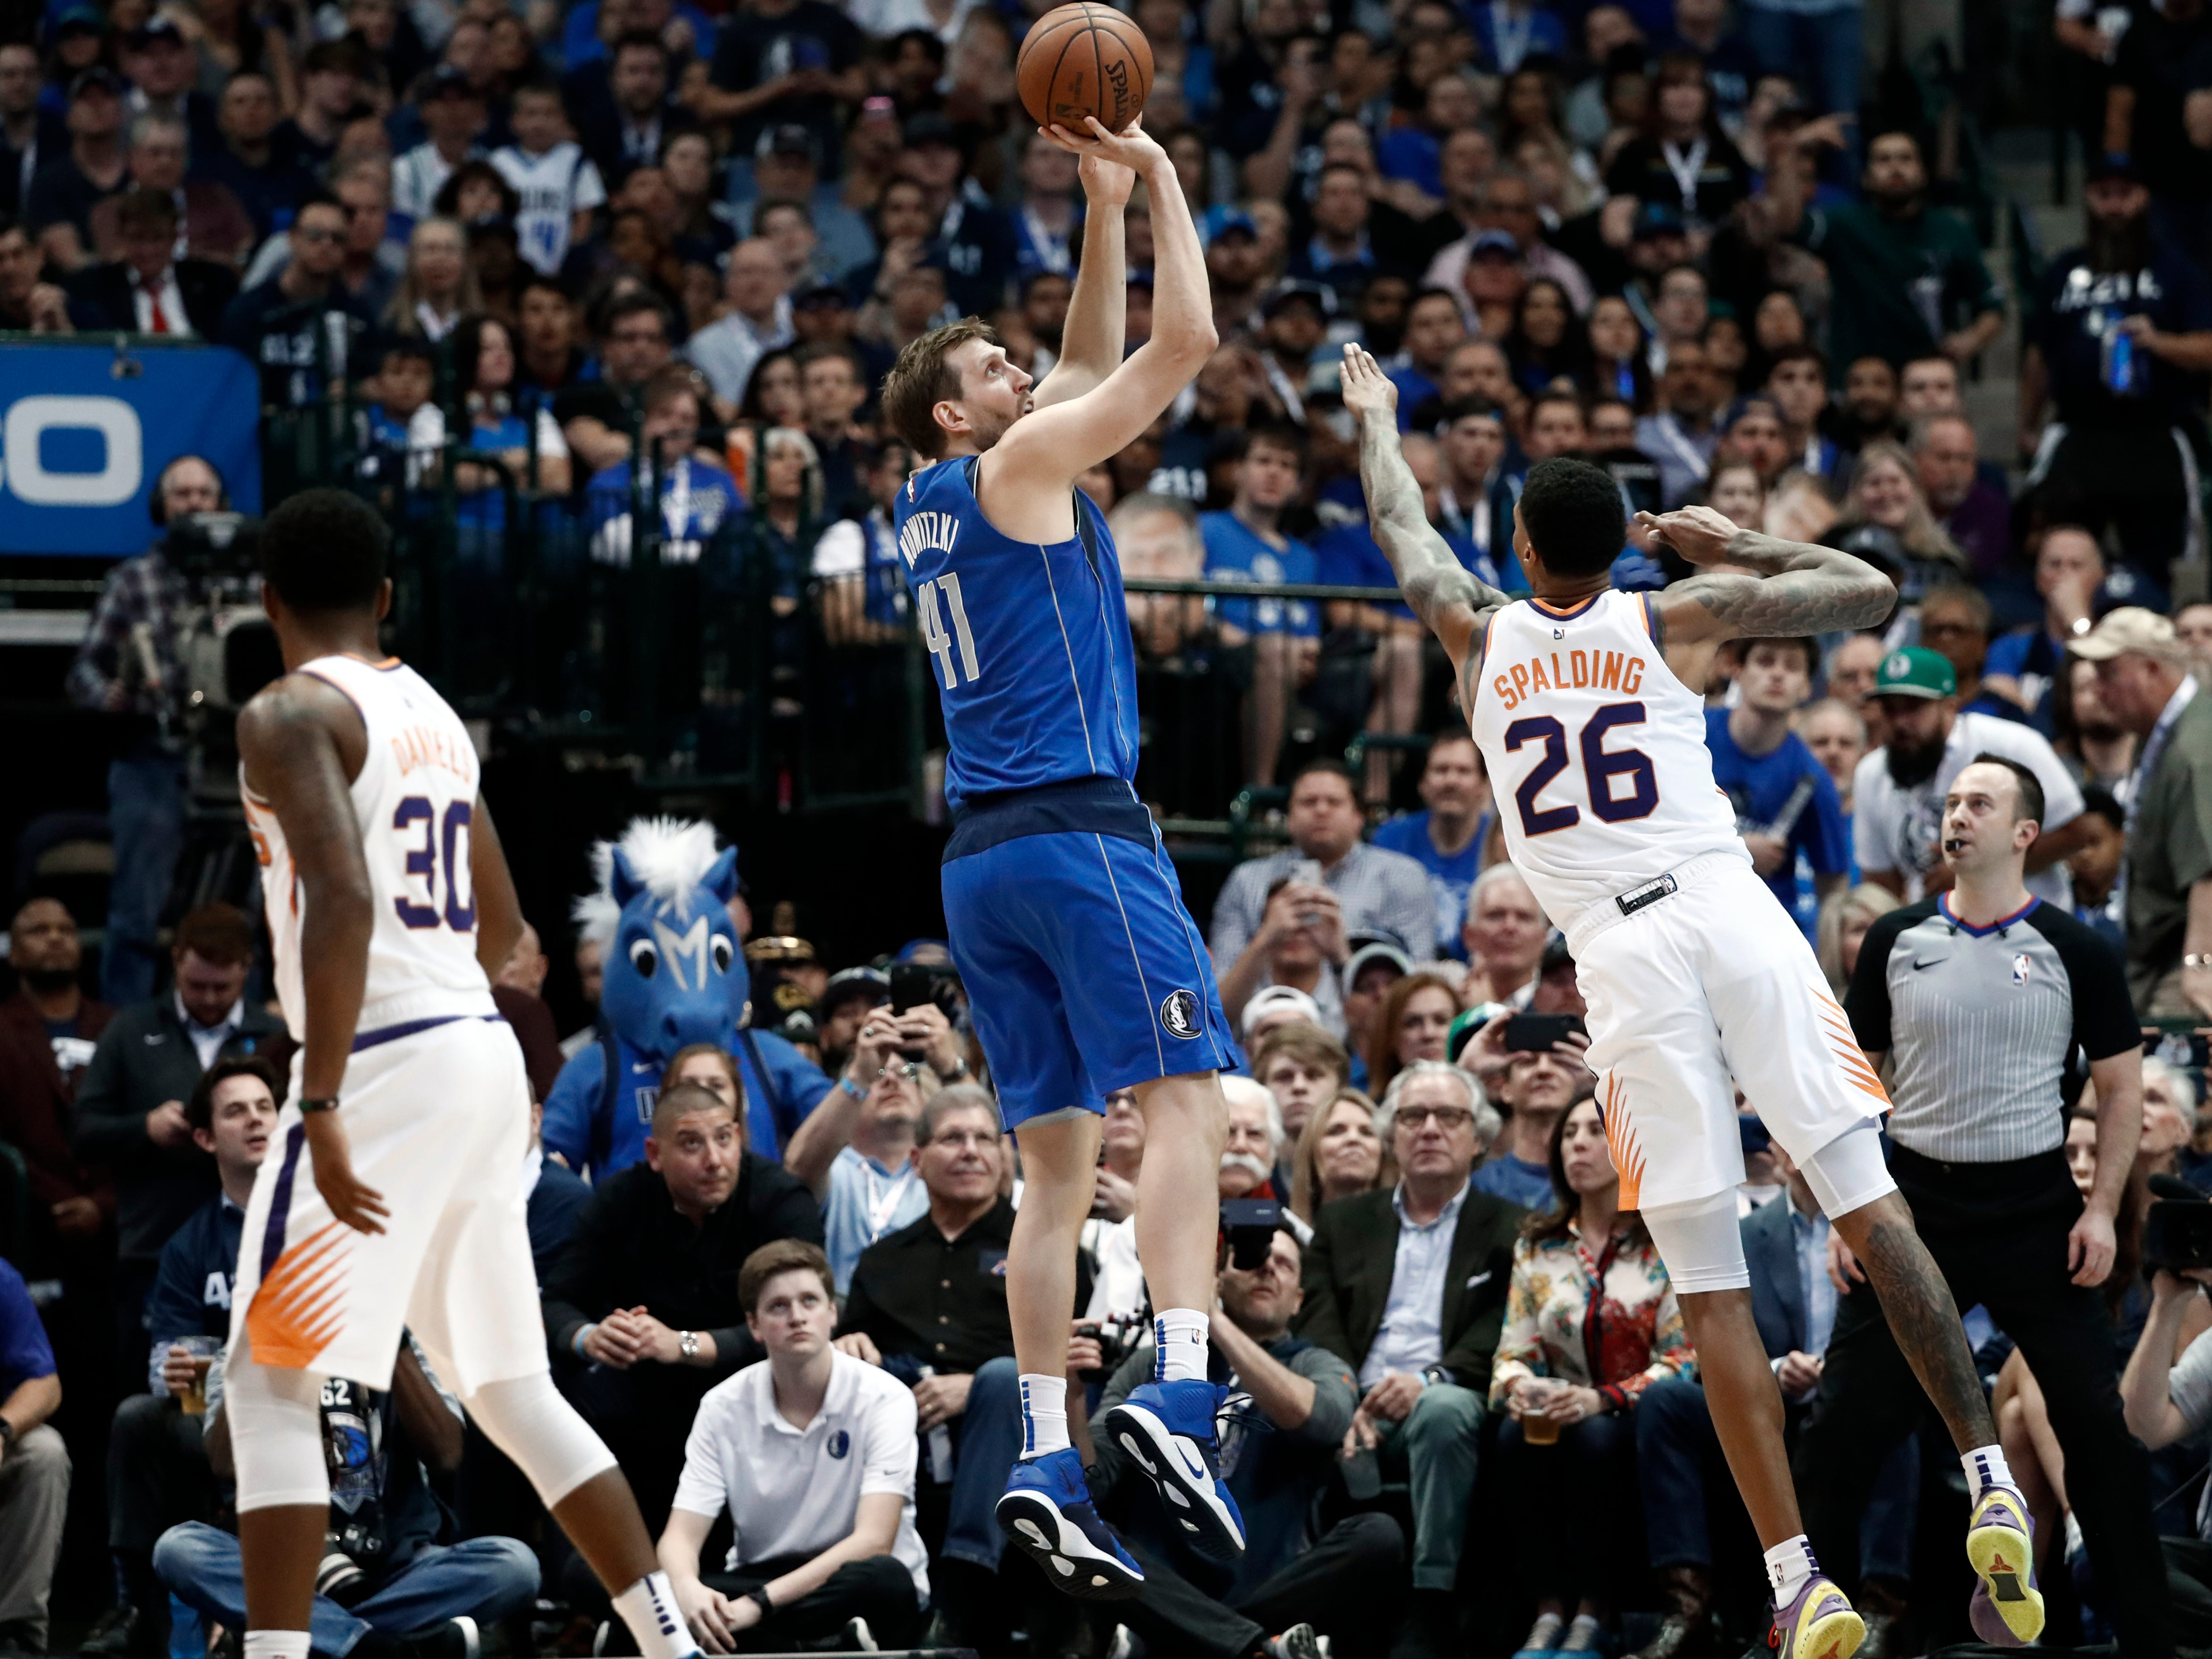 Phoenix Suns' Troy Daniels (30) watches as forward Ray Spalding (26) defends against a shot by Dallas Mavericks' Dirk Nowitzki (41) during the first half of an NBA basketball game in Dallas, Tuesday, April 9, 2019. (AP Photo/Tony Gutierrez)